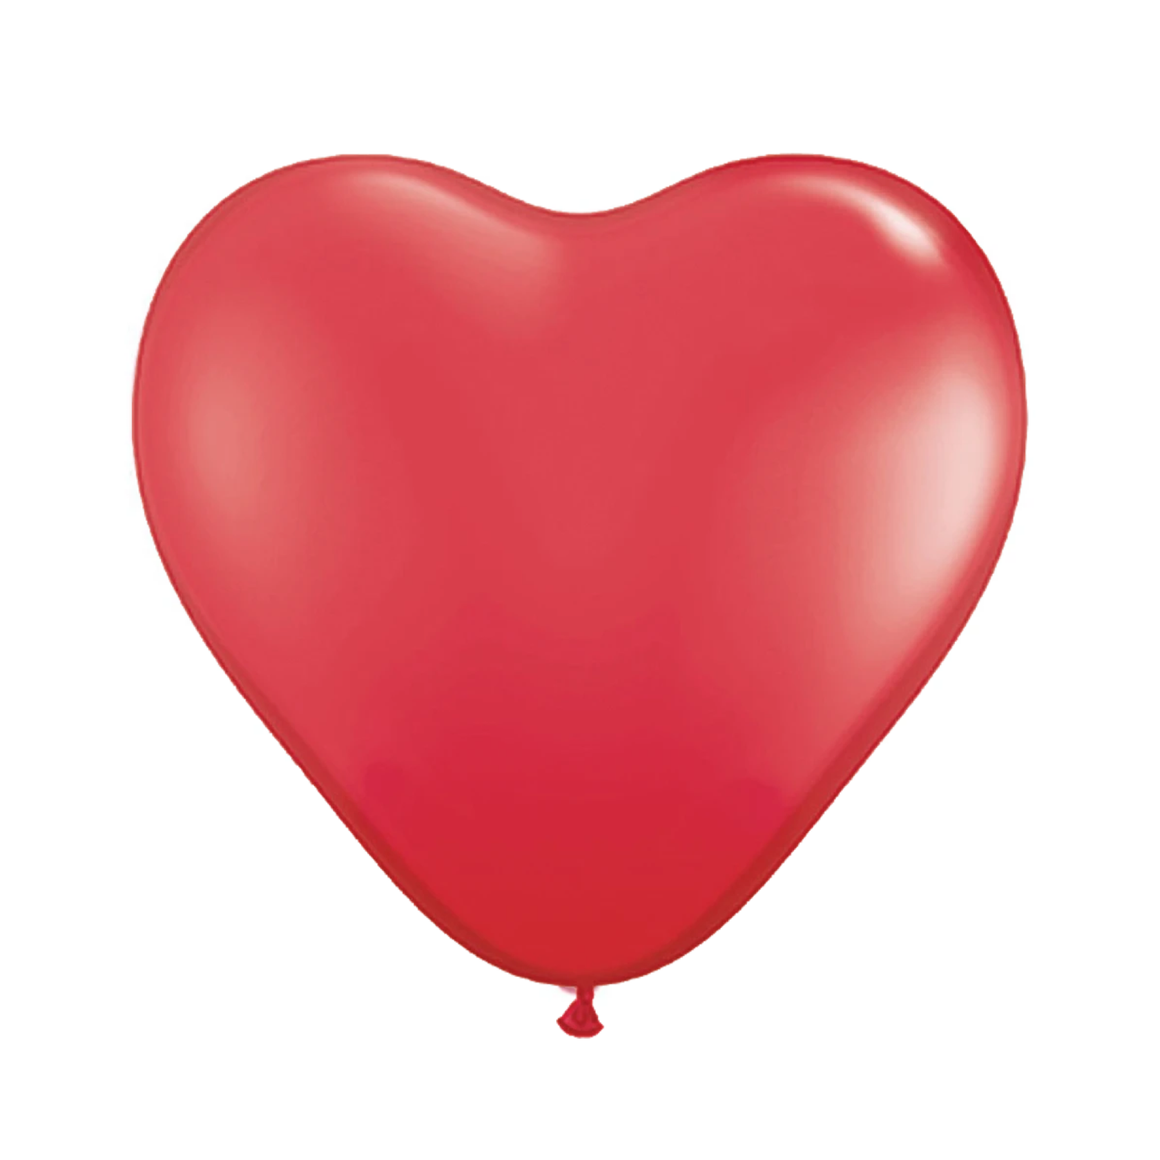 "BALLOON BAR - HEART 11"" RED"